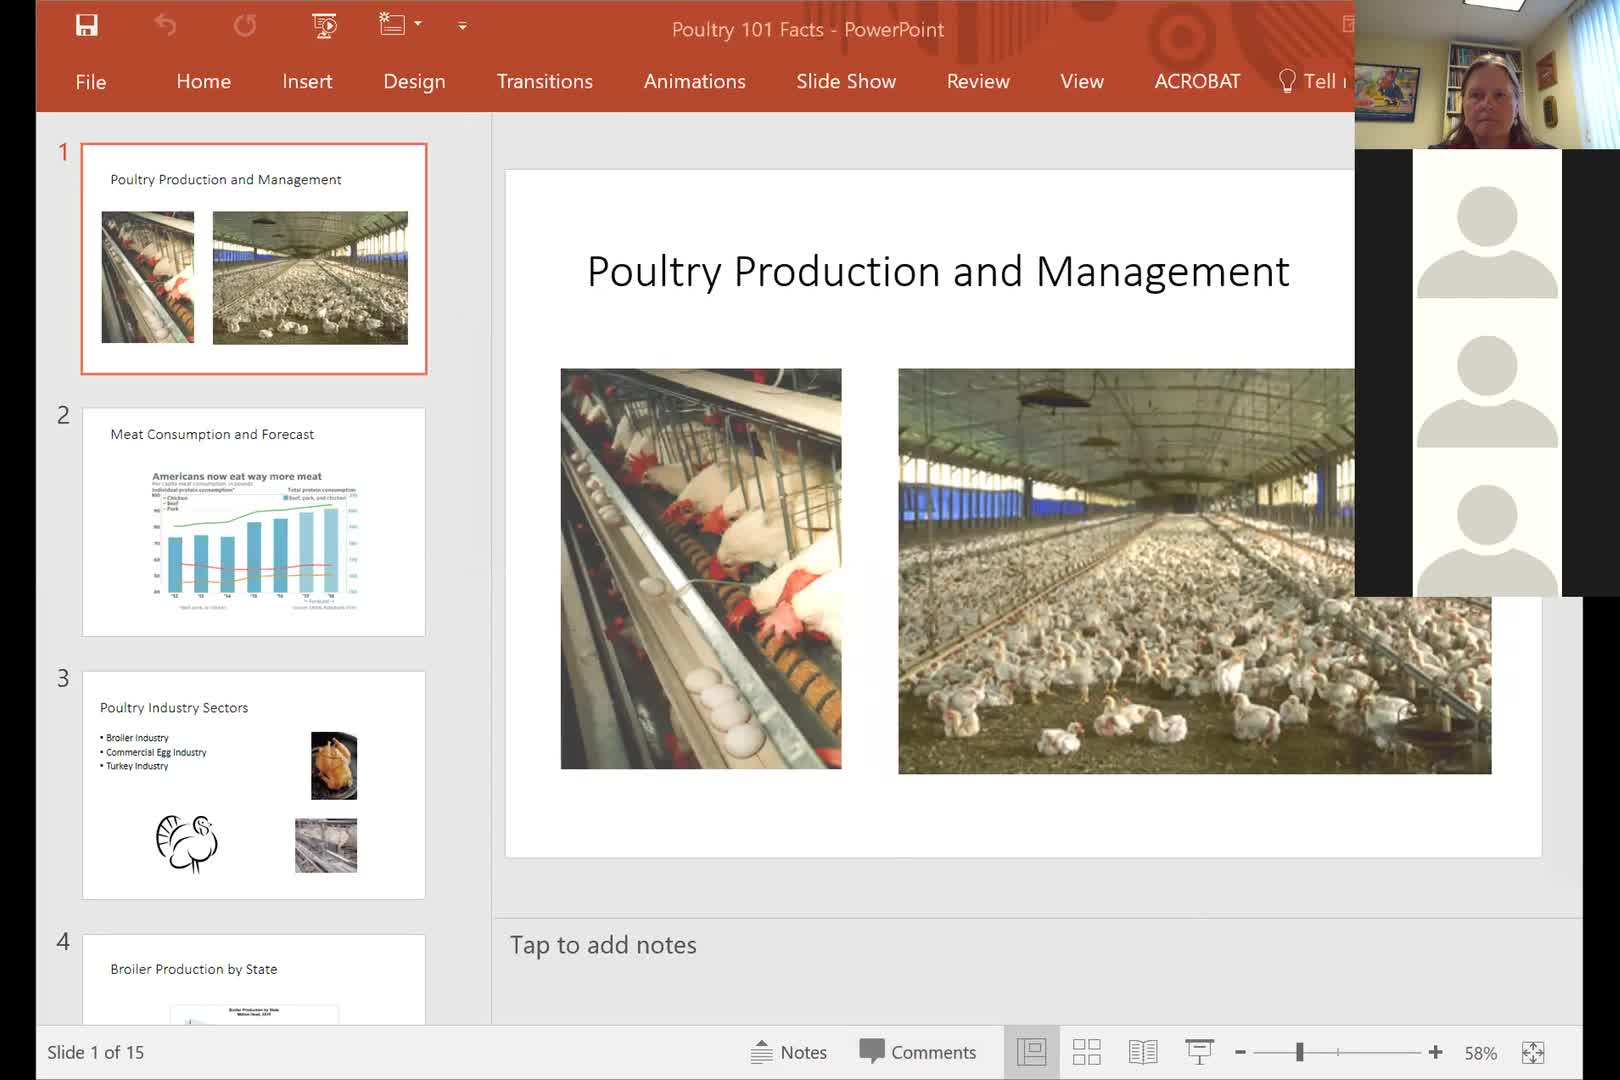 Poultry Expansion 101 Facts